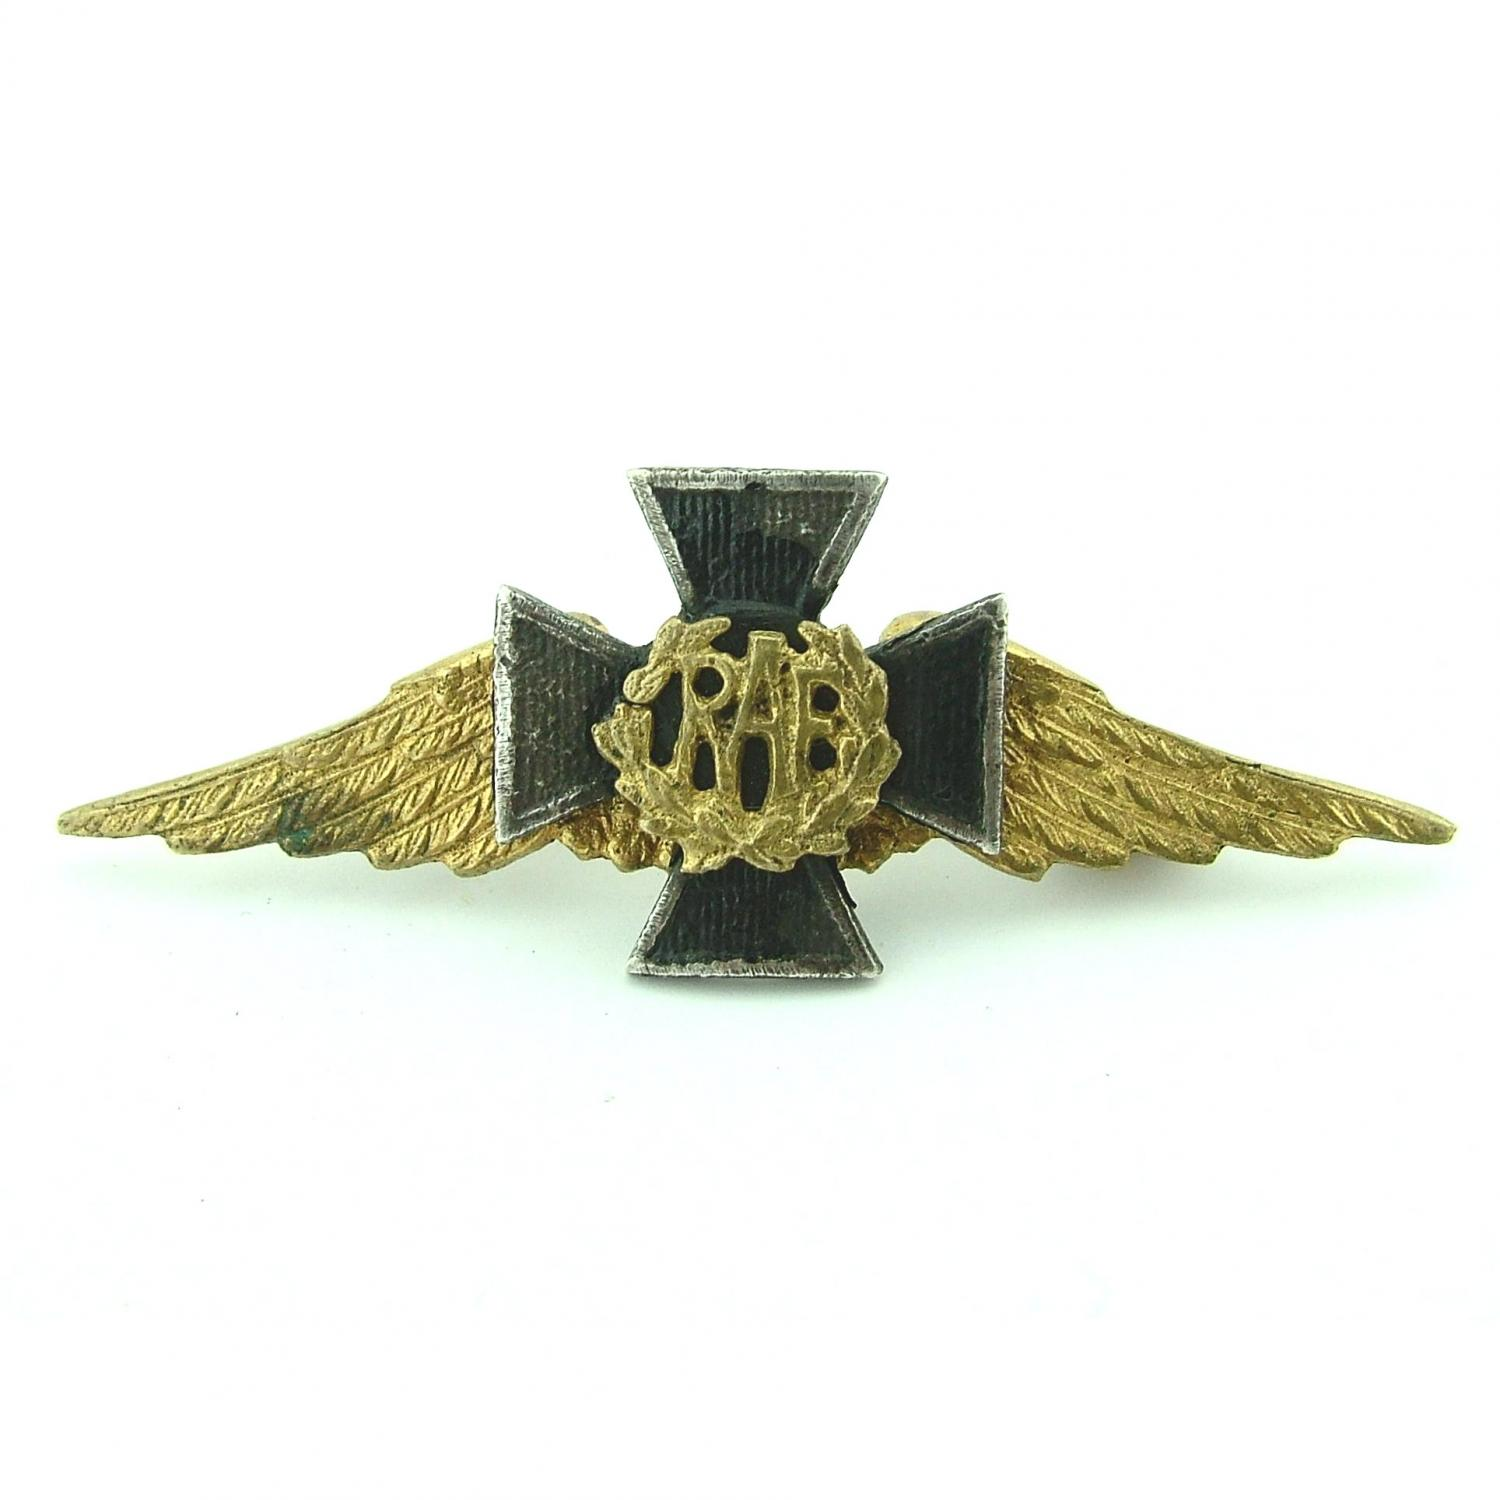 RAF chaplain's collar badge